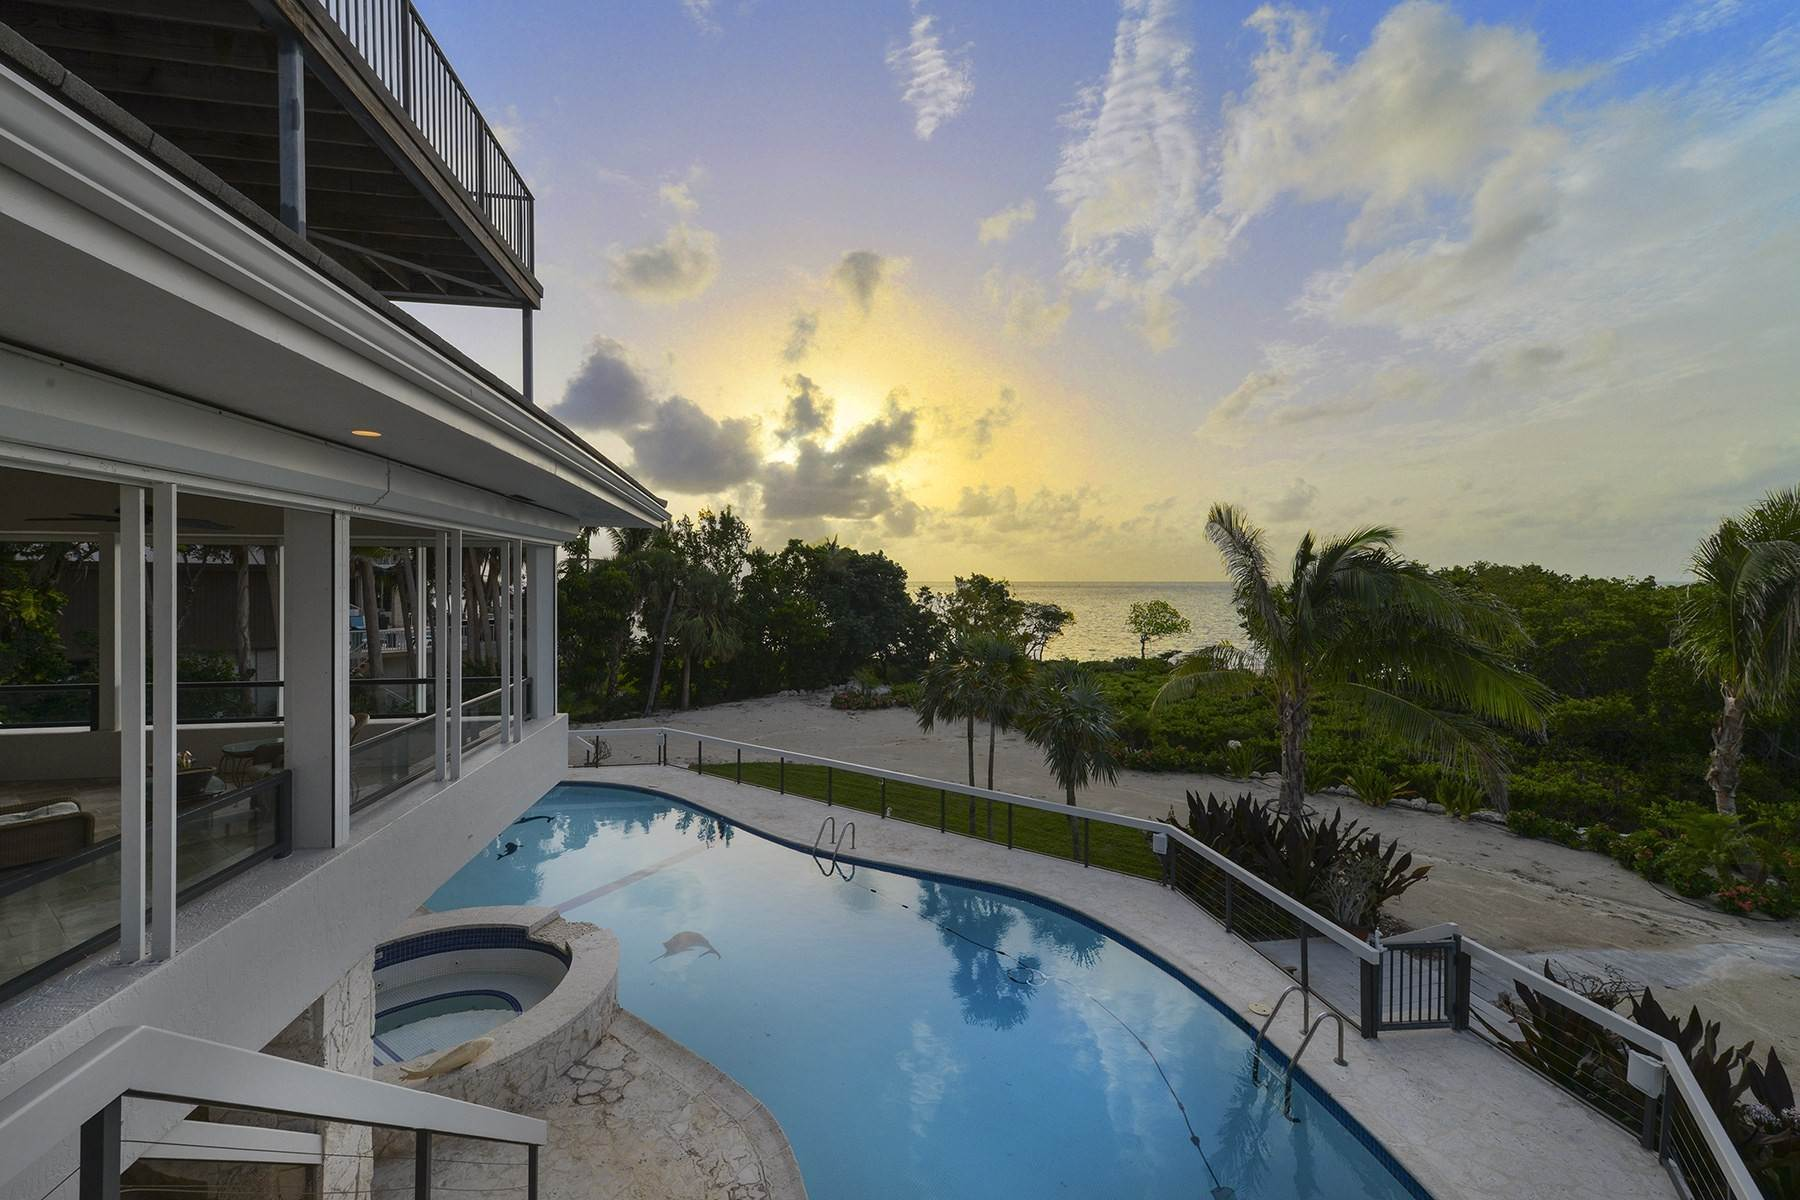 Single Family Homes のために 売買 アット 19 Sunrise Cay Drive, Key Largo, FL 19 Sunrise Cay Drive Key Largo, フロリダ 33037 アメリカ